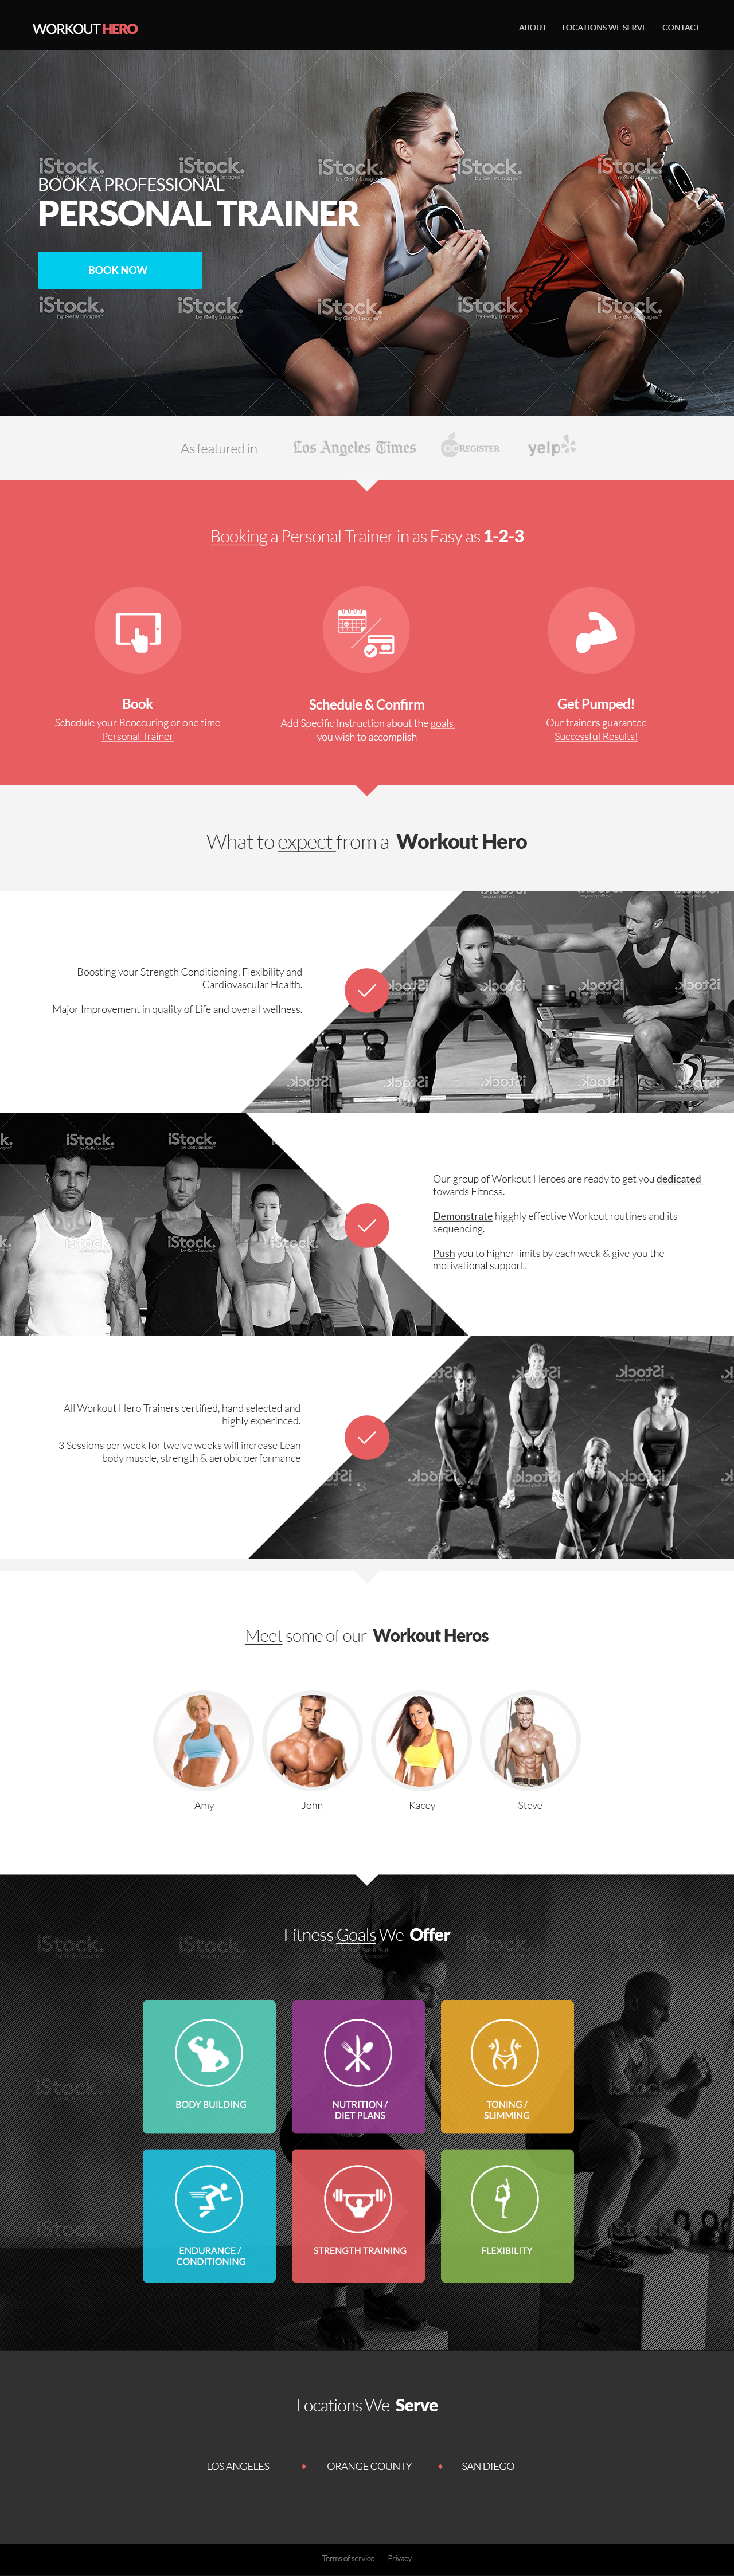 Personal Training Services. WIREFRAME and CONTENT provided =)